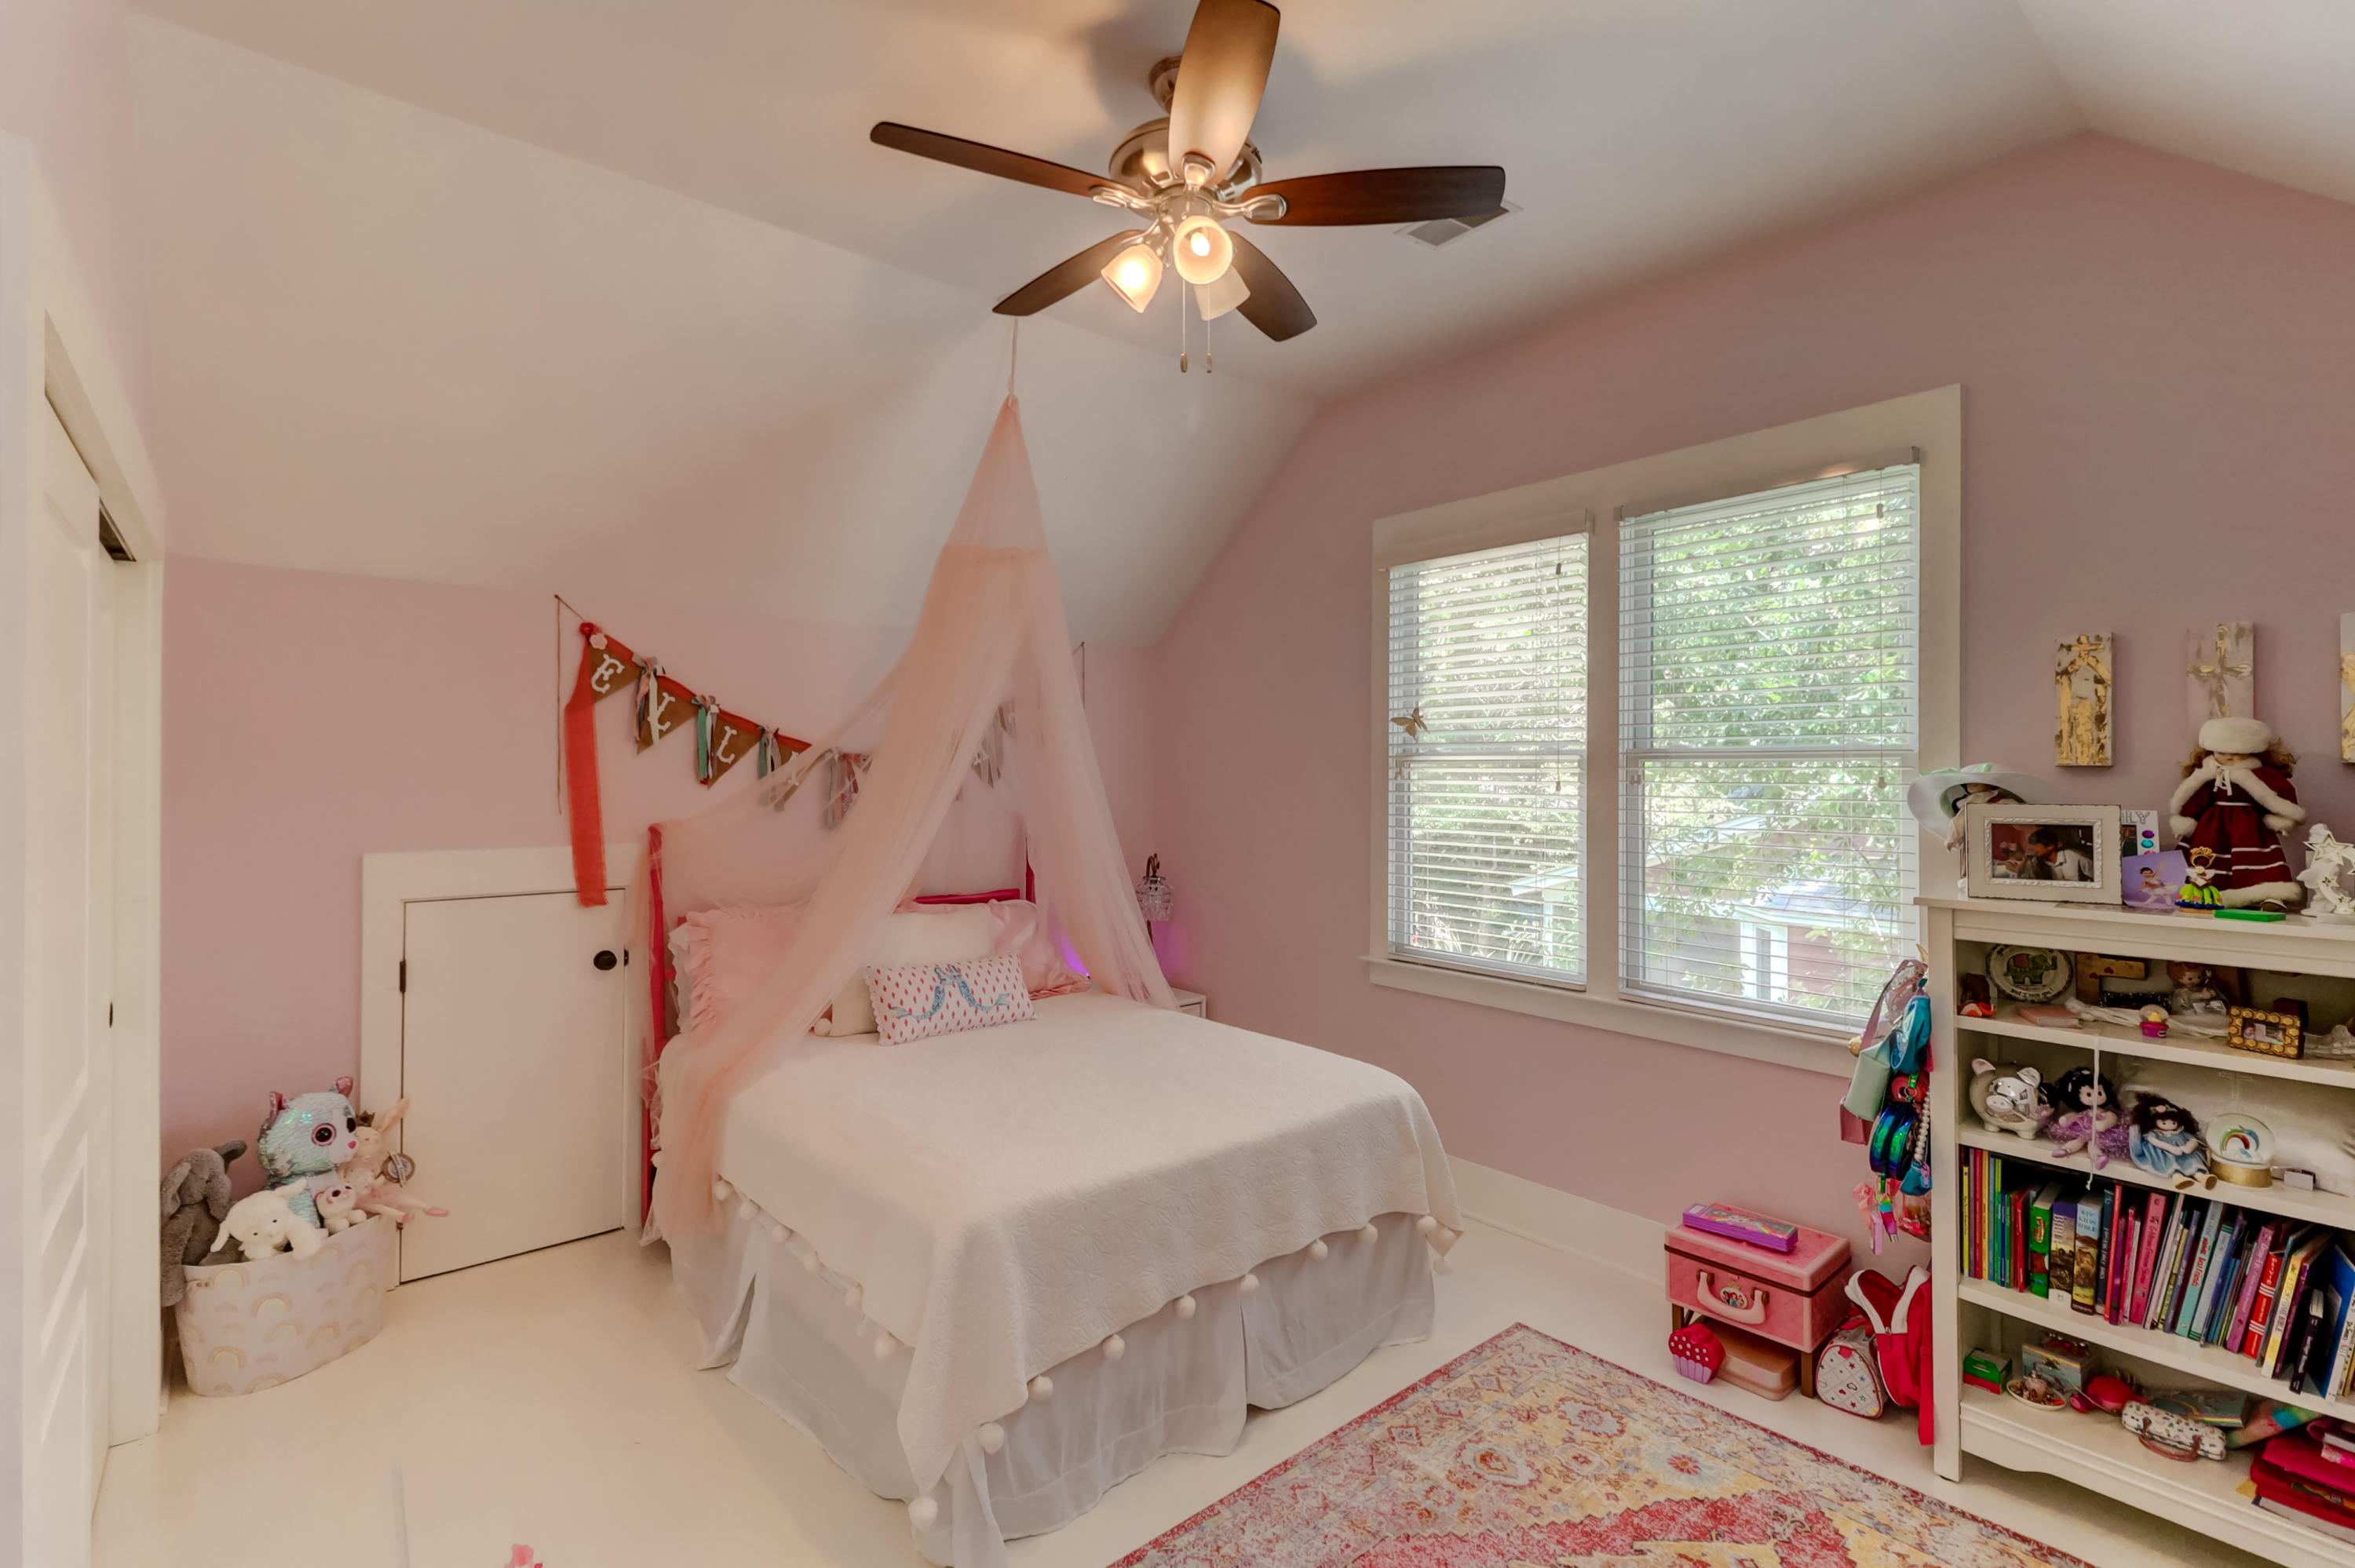 The Villages In St Johns Woods Homes For Sale - 5056 Coral Reef Dr, Johns Island, SC - 39